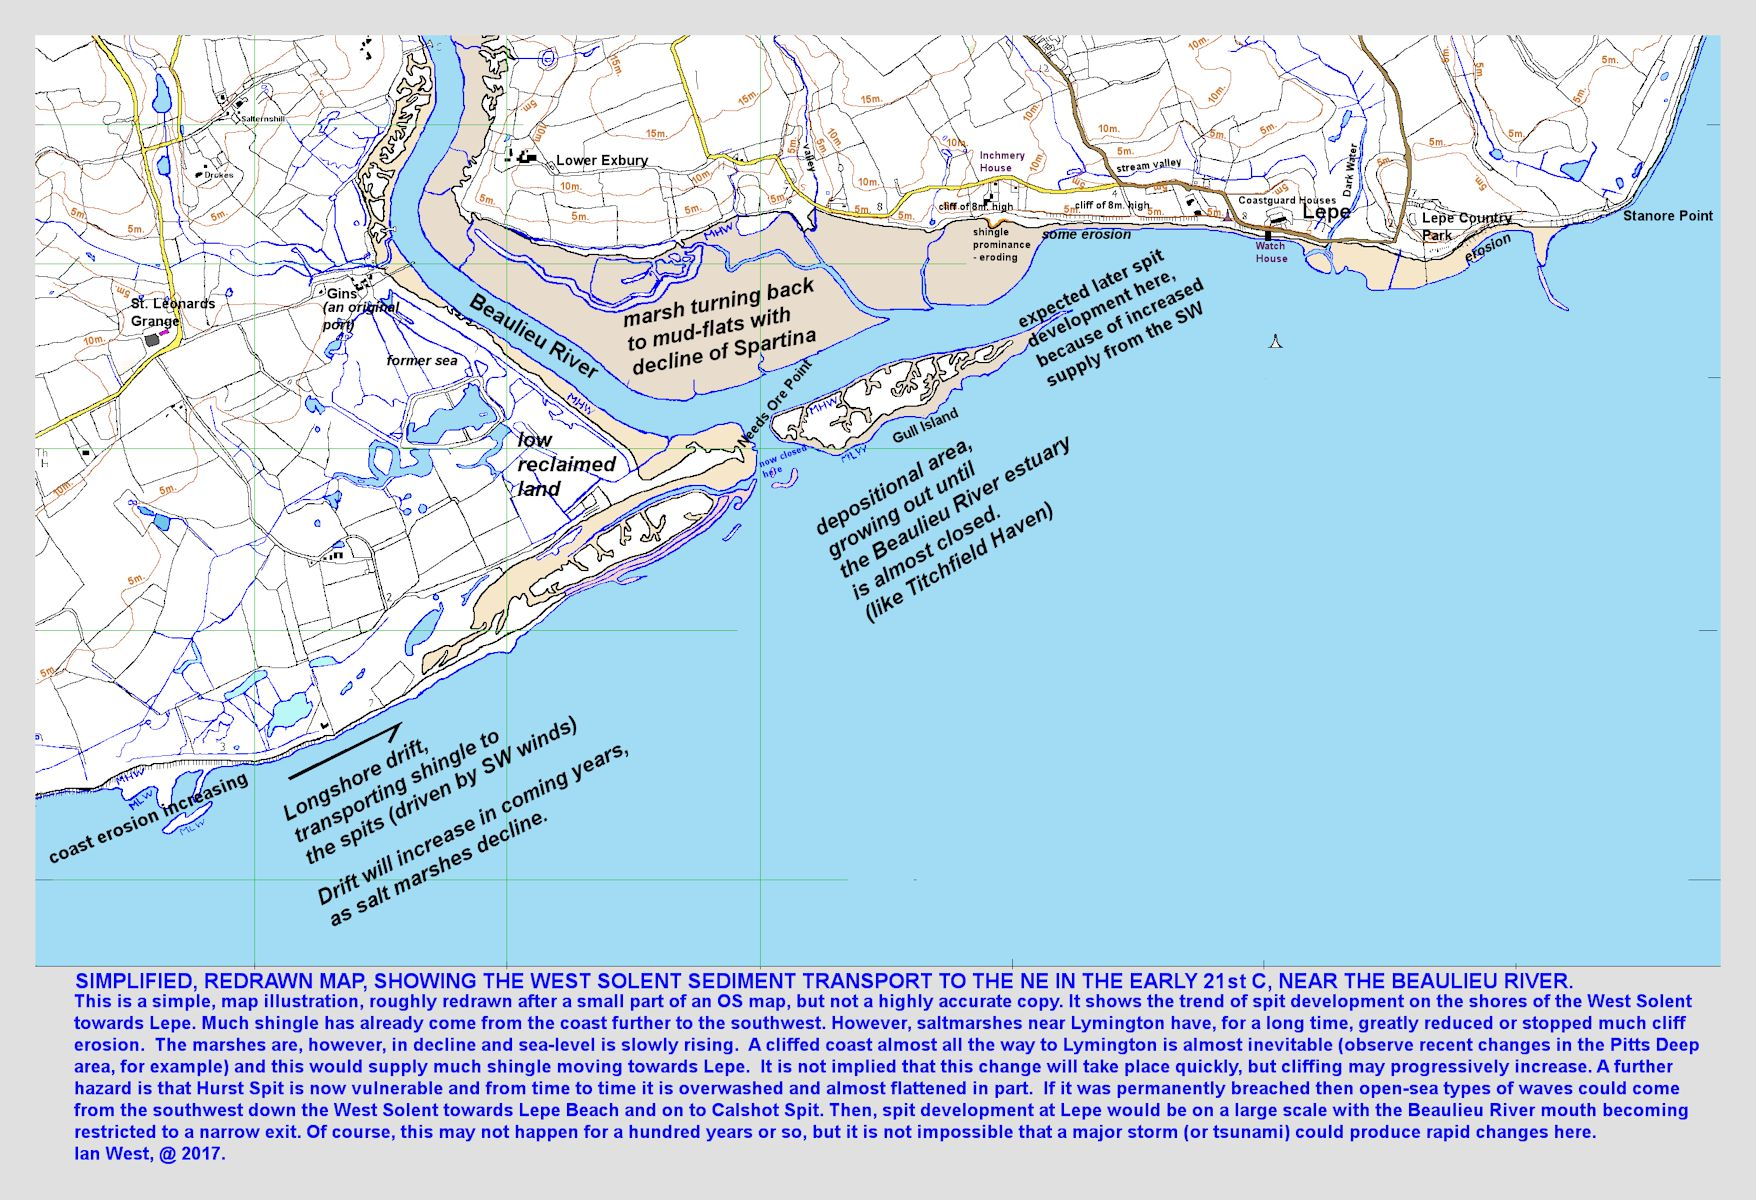 Shingle transport and spit development near Lepe Beach and the mouth of Beaulieu River, Hampshire, southern England, a modern map